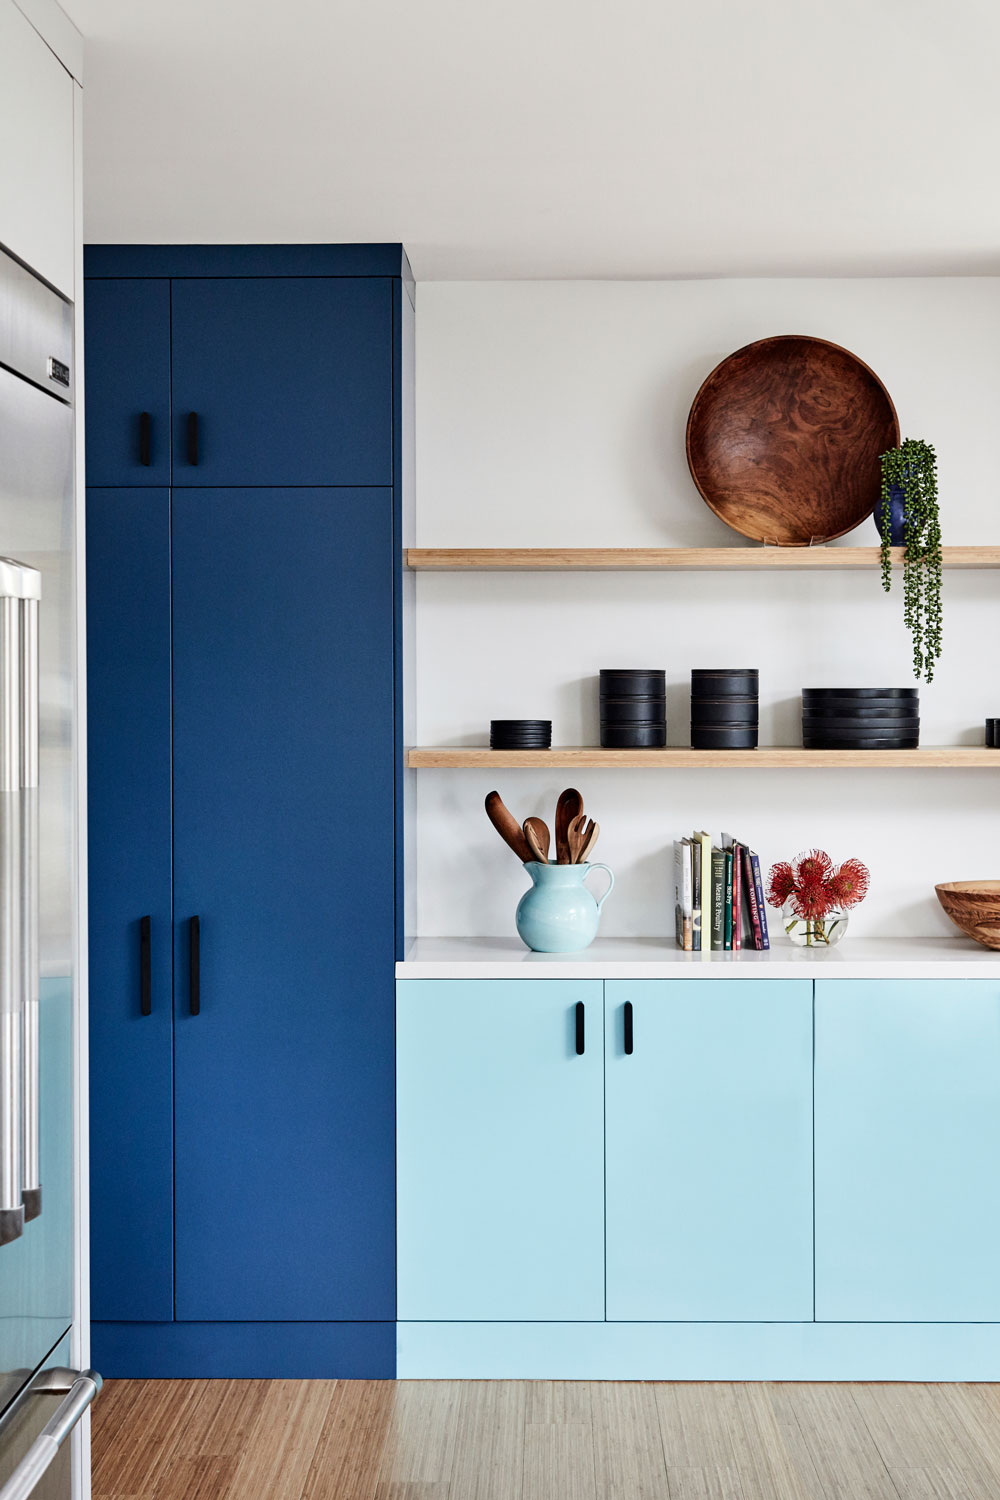 Taking away most of the upper cabinetry made a wall of built-in pantry closets a must for kitchen storage.